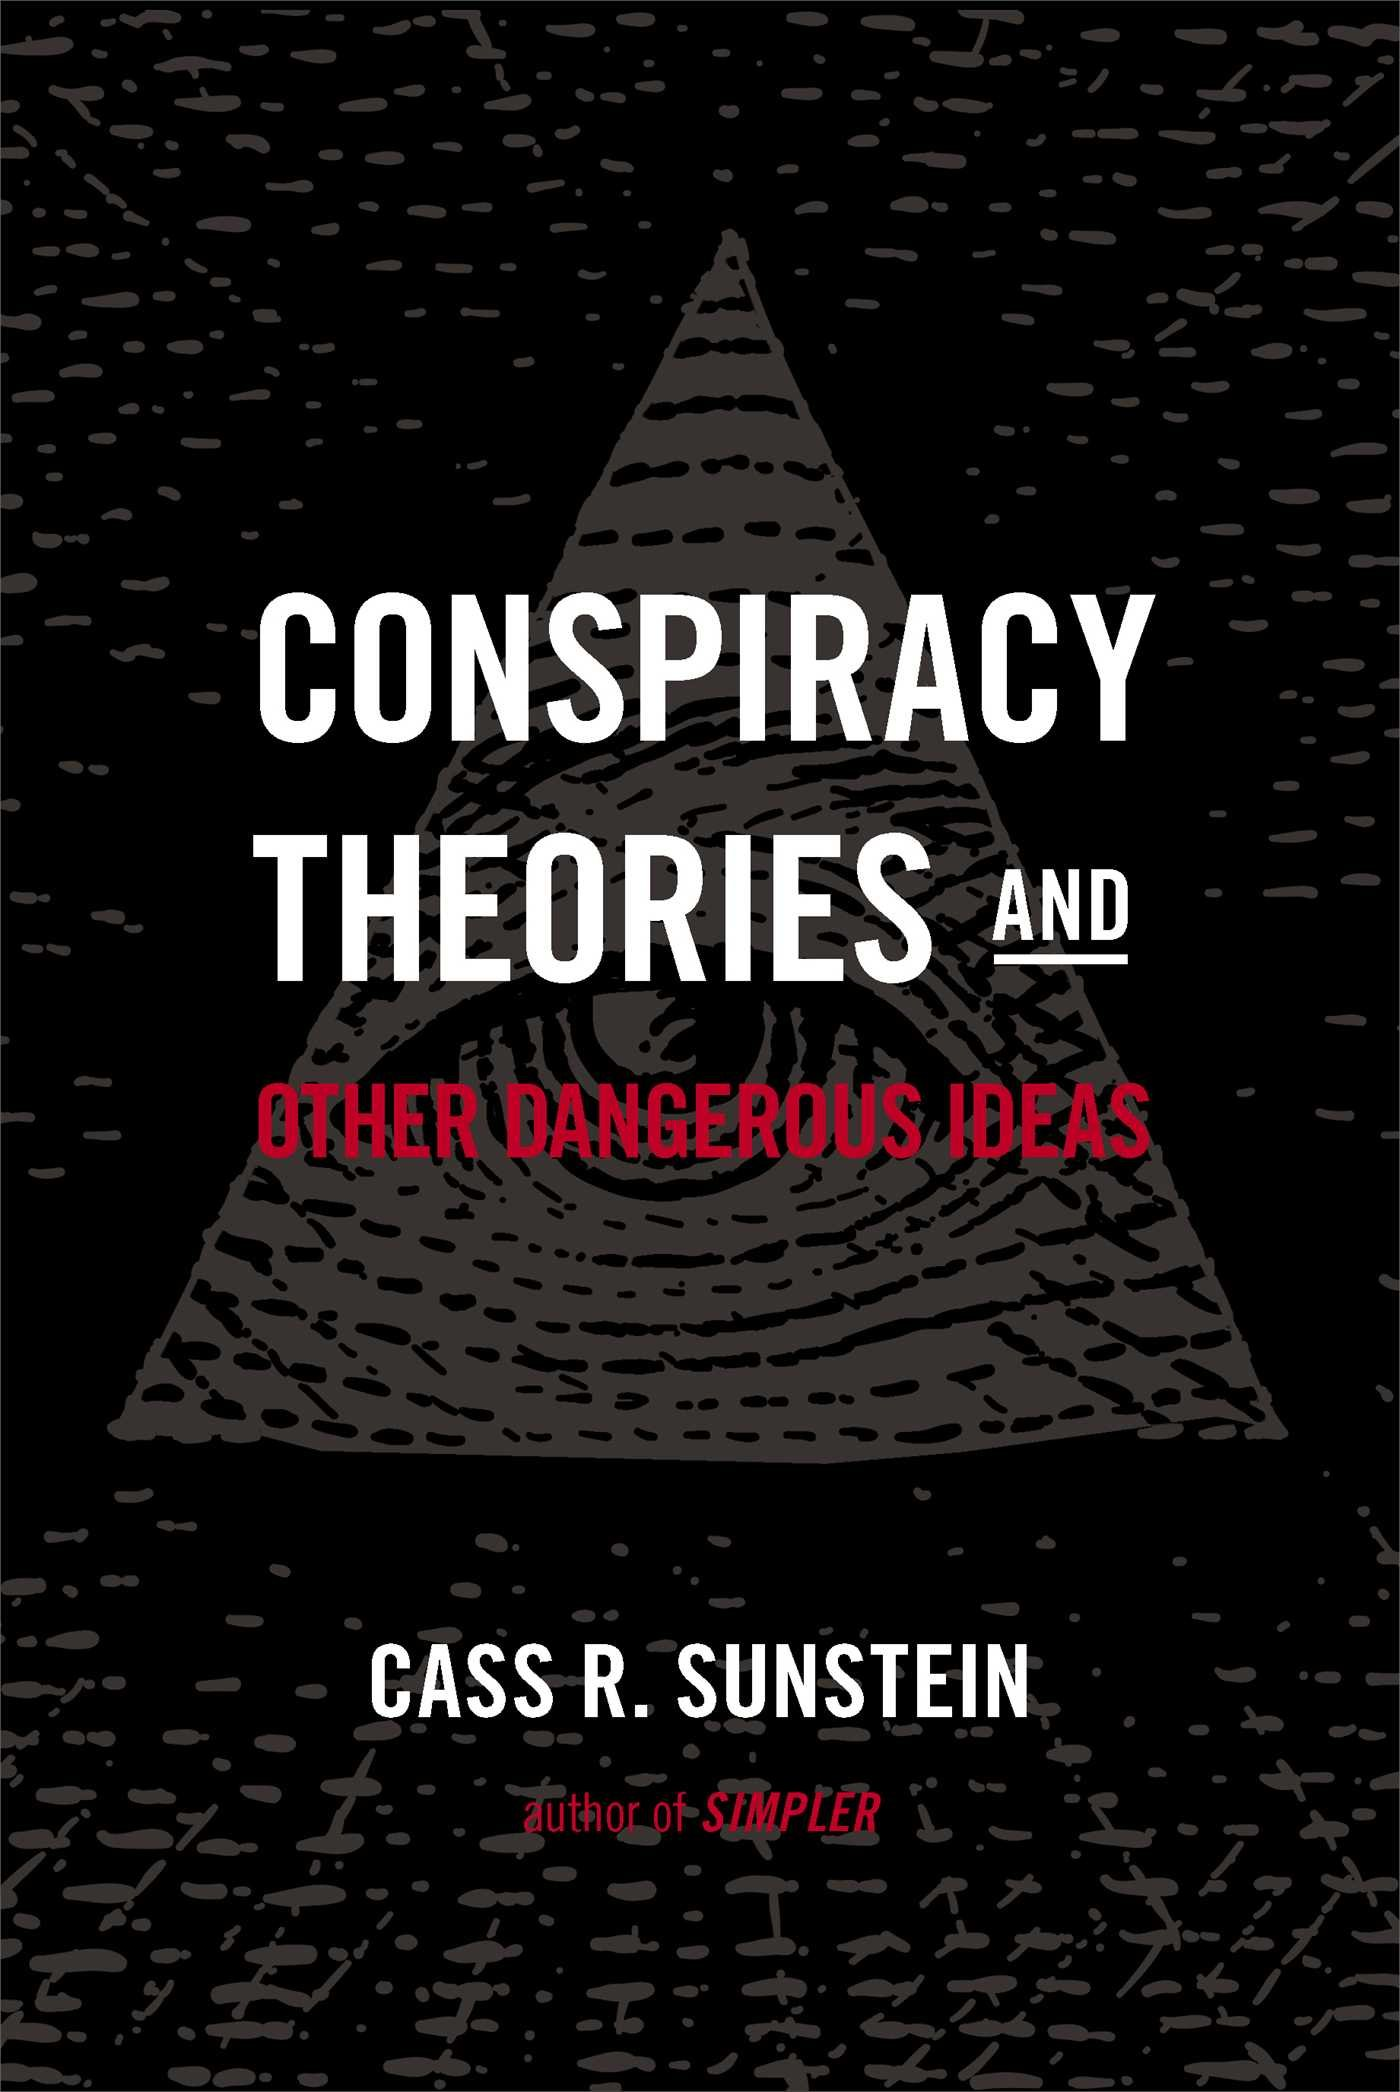 conspiracy theories and other dangerous ideas cass r sunstein  conspiracy theories and other dangerous ideas cass r sunstein 9781476726625 books ca